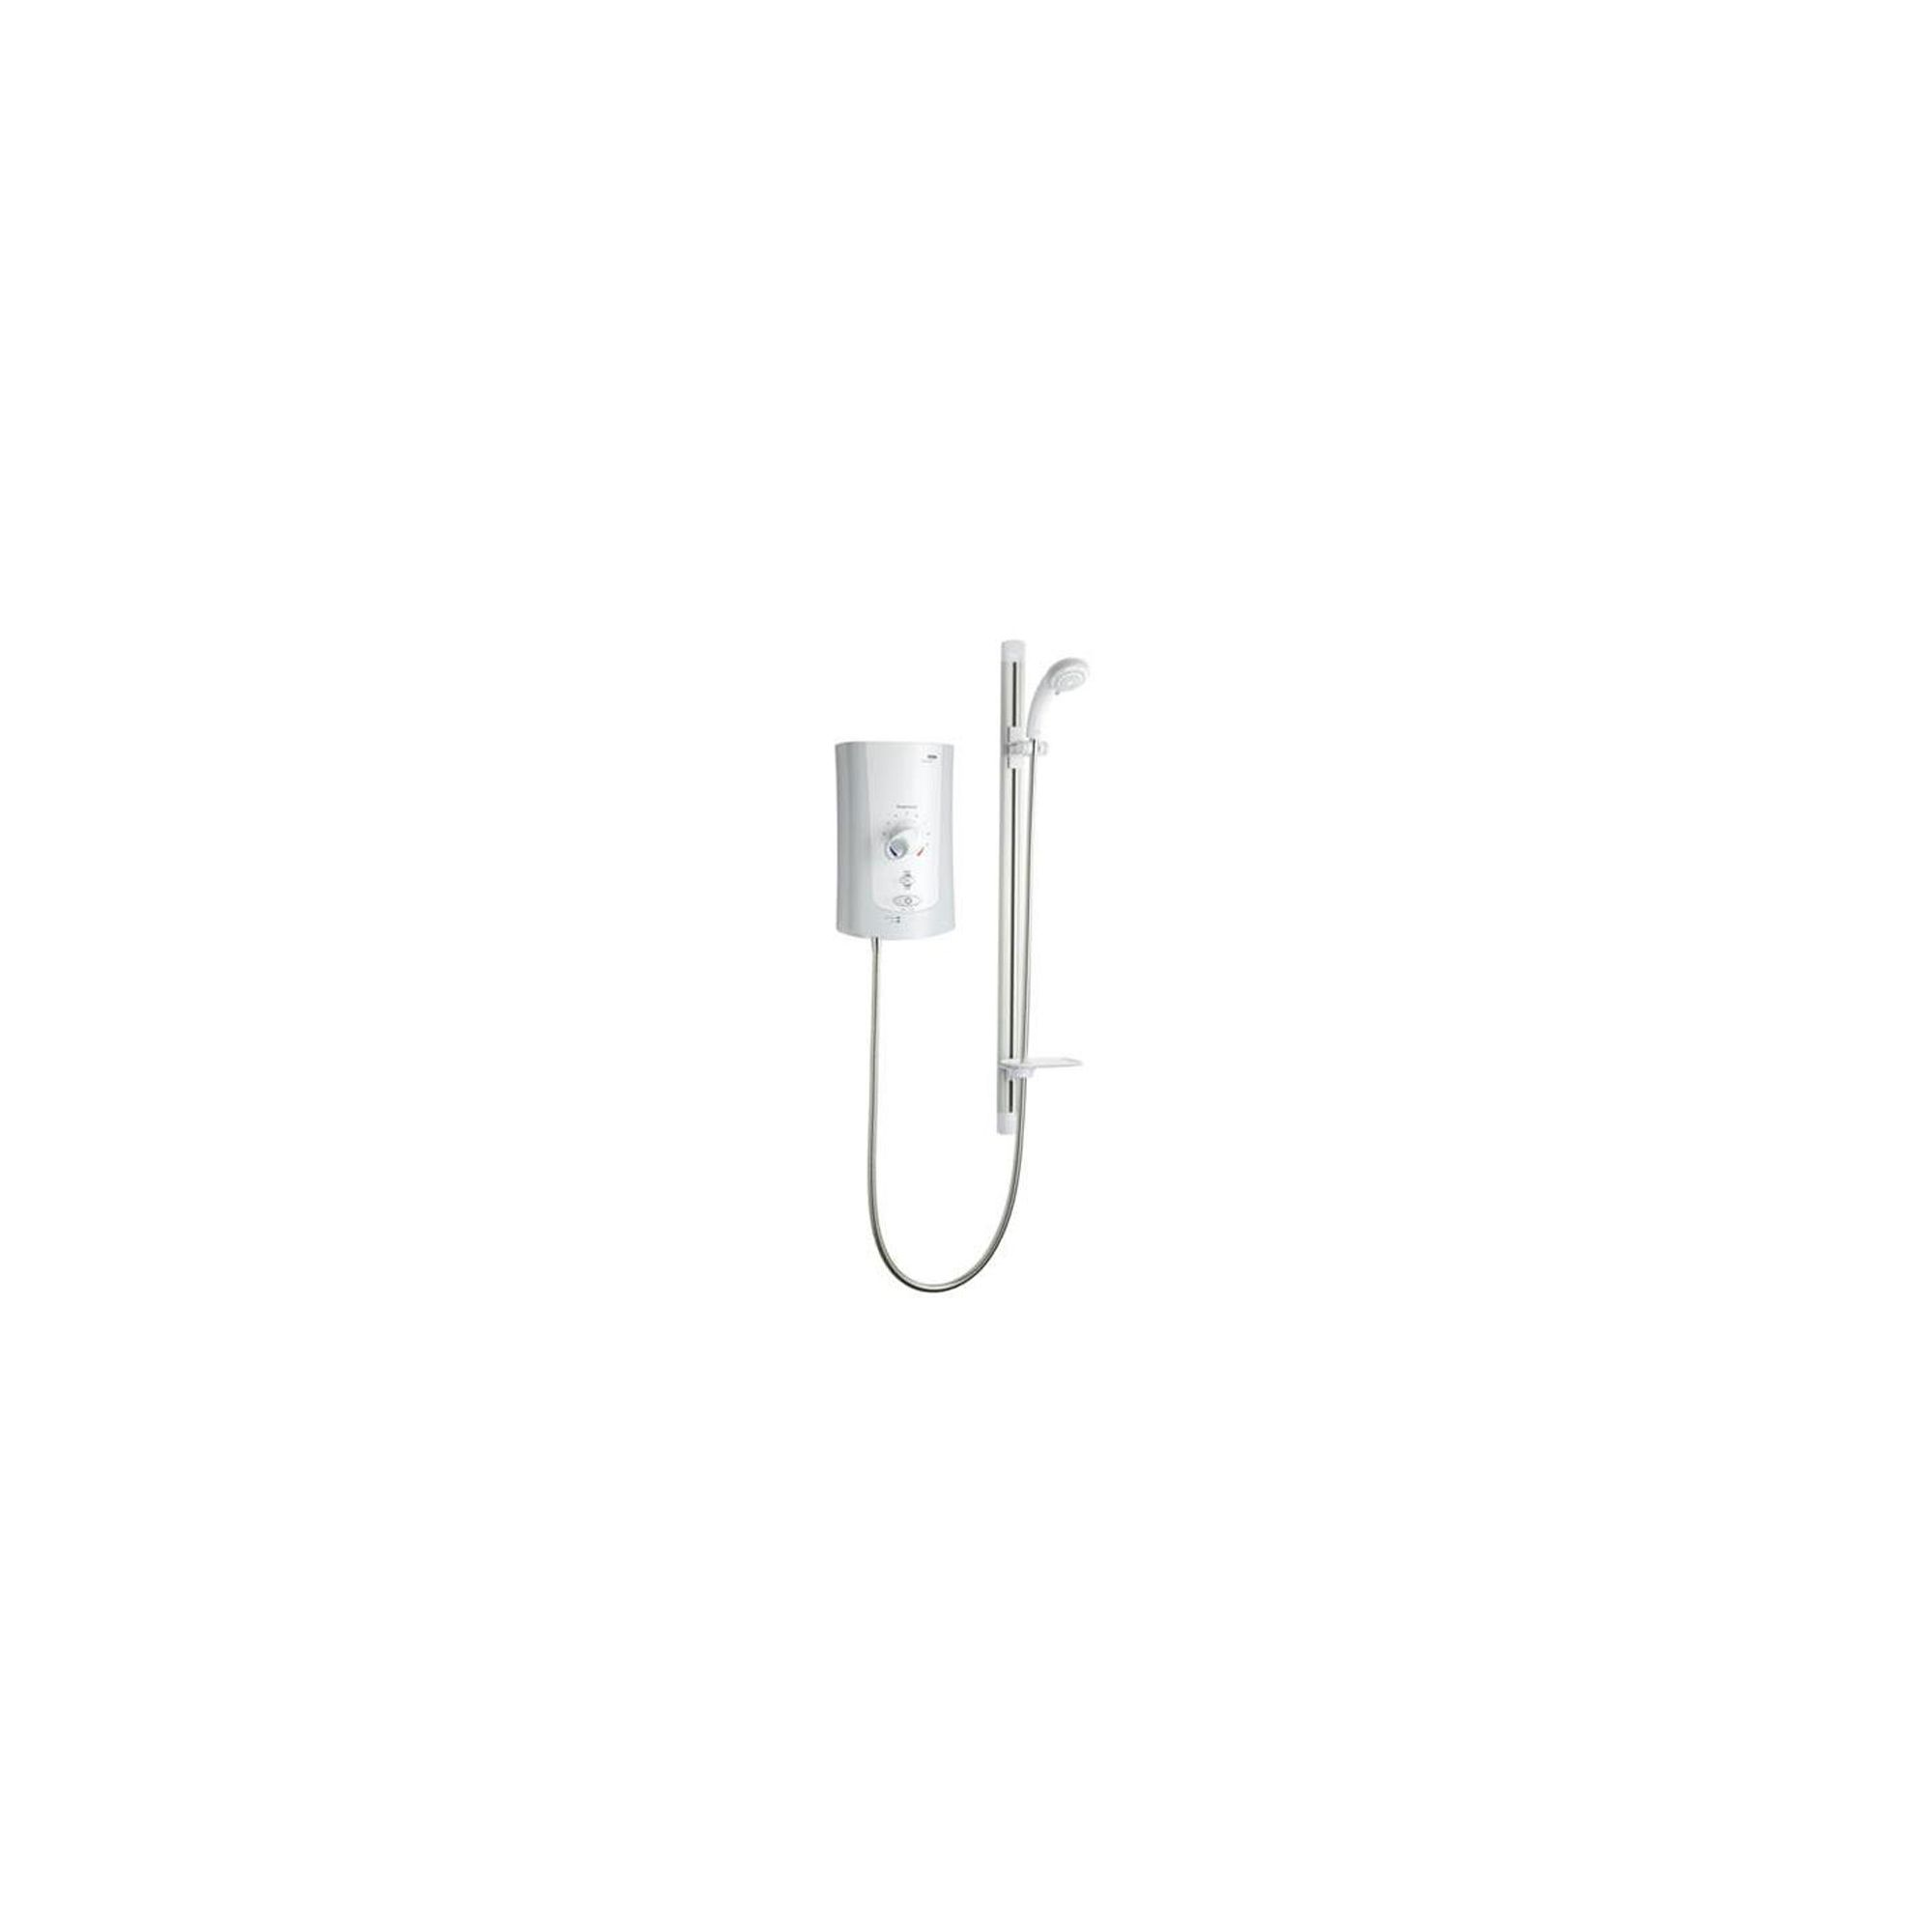 Mira Advance Flex 9.0 kW Electric Shower for LP Systems, White/Chrome at Tesco Direct